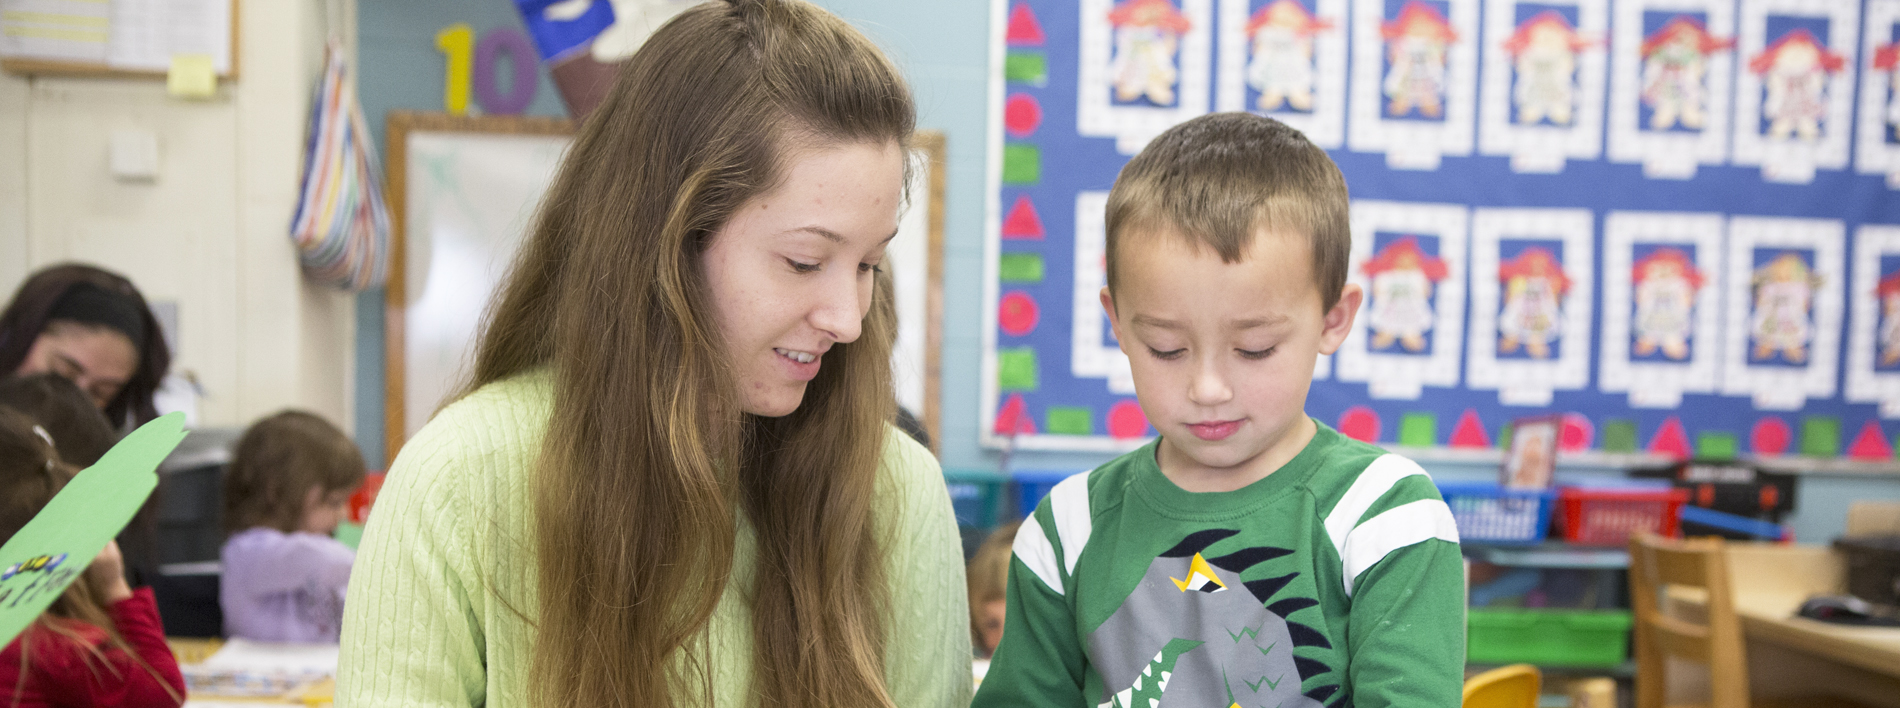 special education graduate essays Education of special needs students research papers delve into an example of how to order a graduate level research paper, with an outline of the paper included buy.